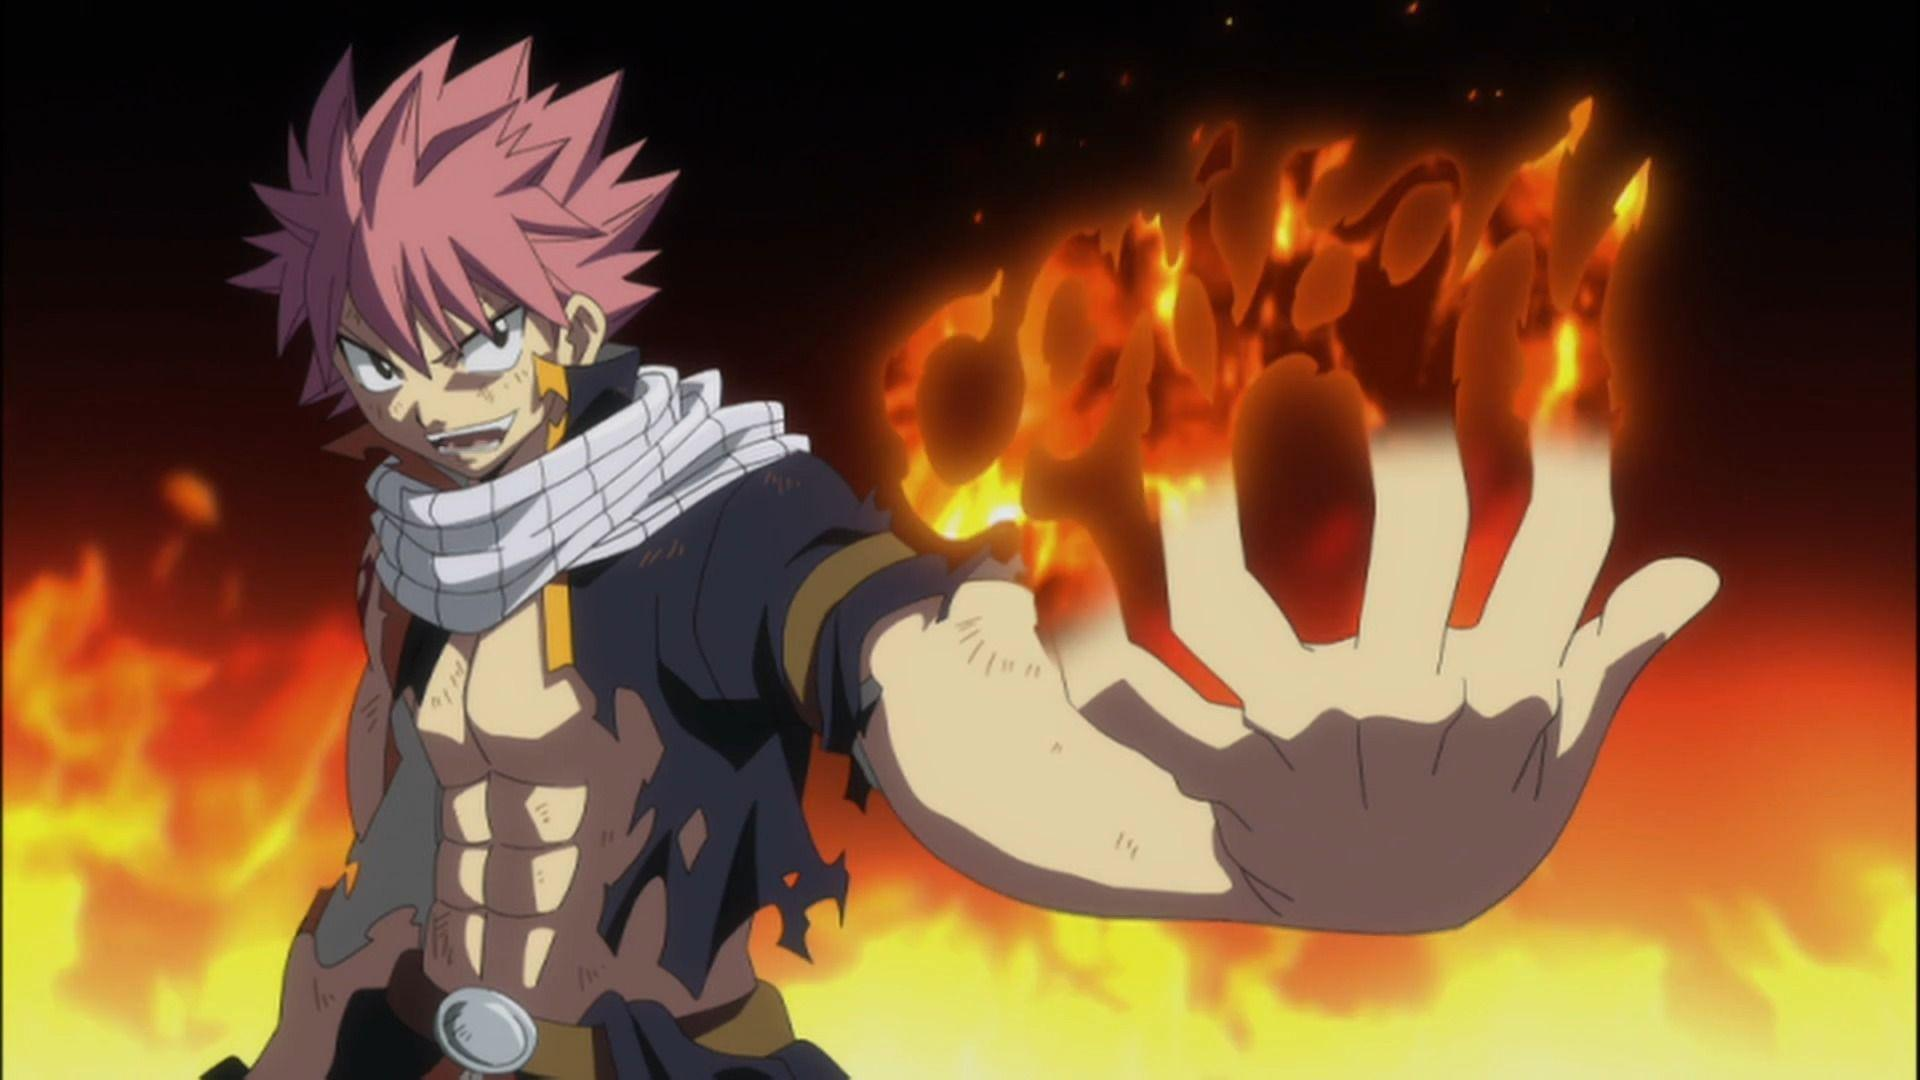 Fairy Tail 2015 Wallpapers Hd Wallpaper Cave